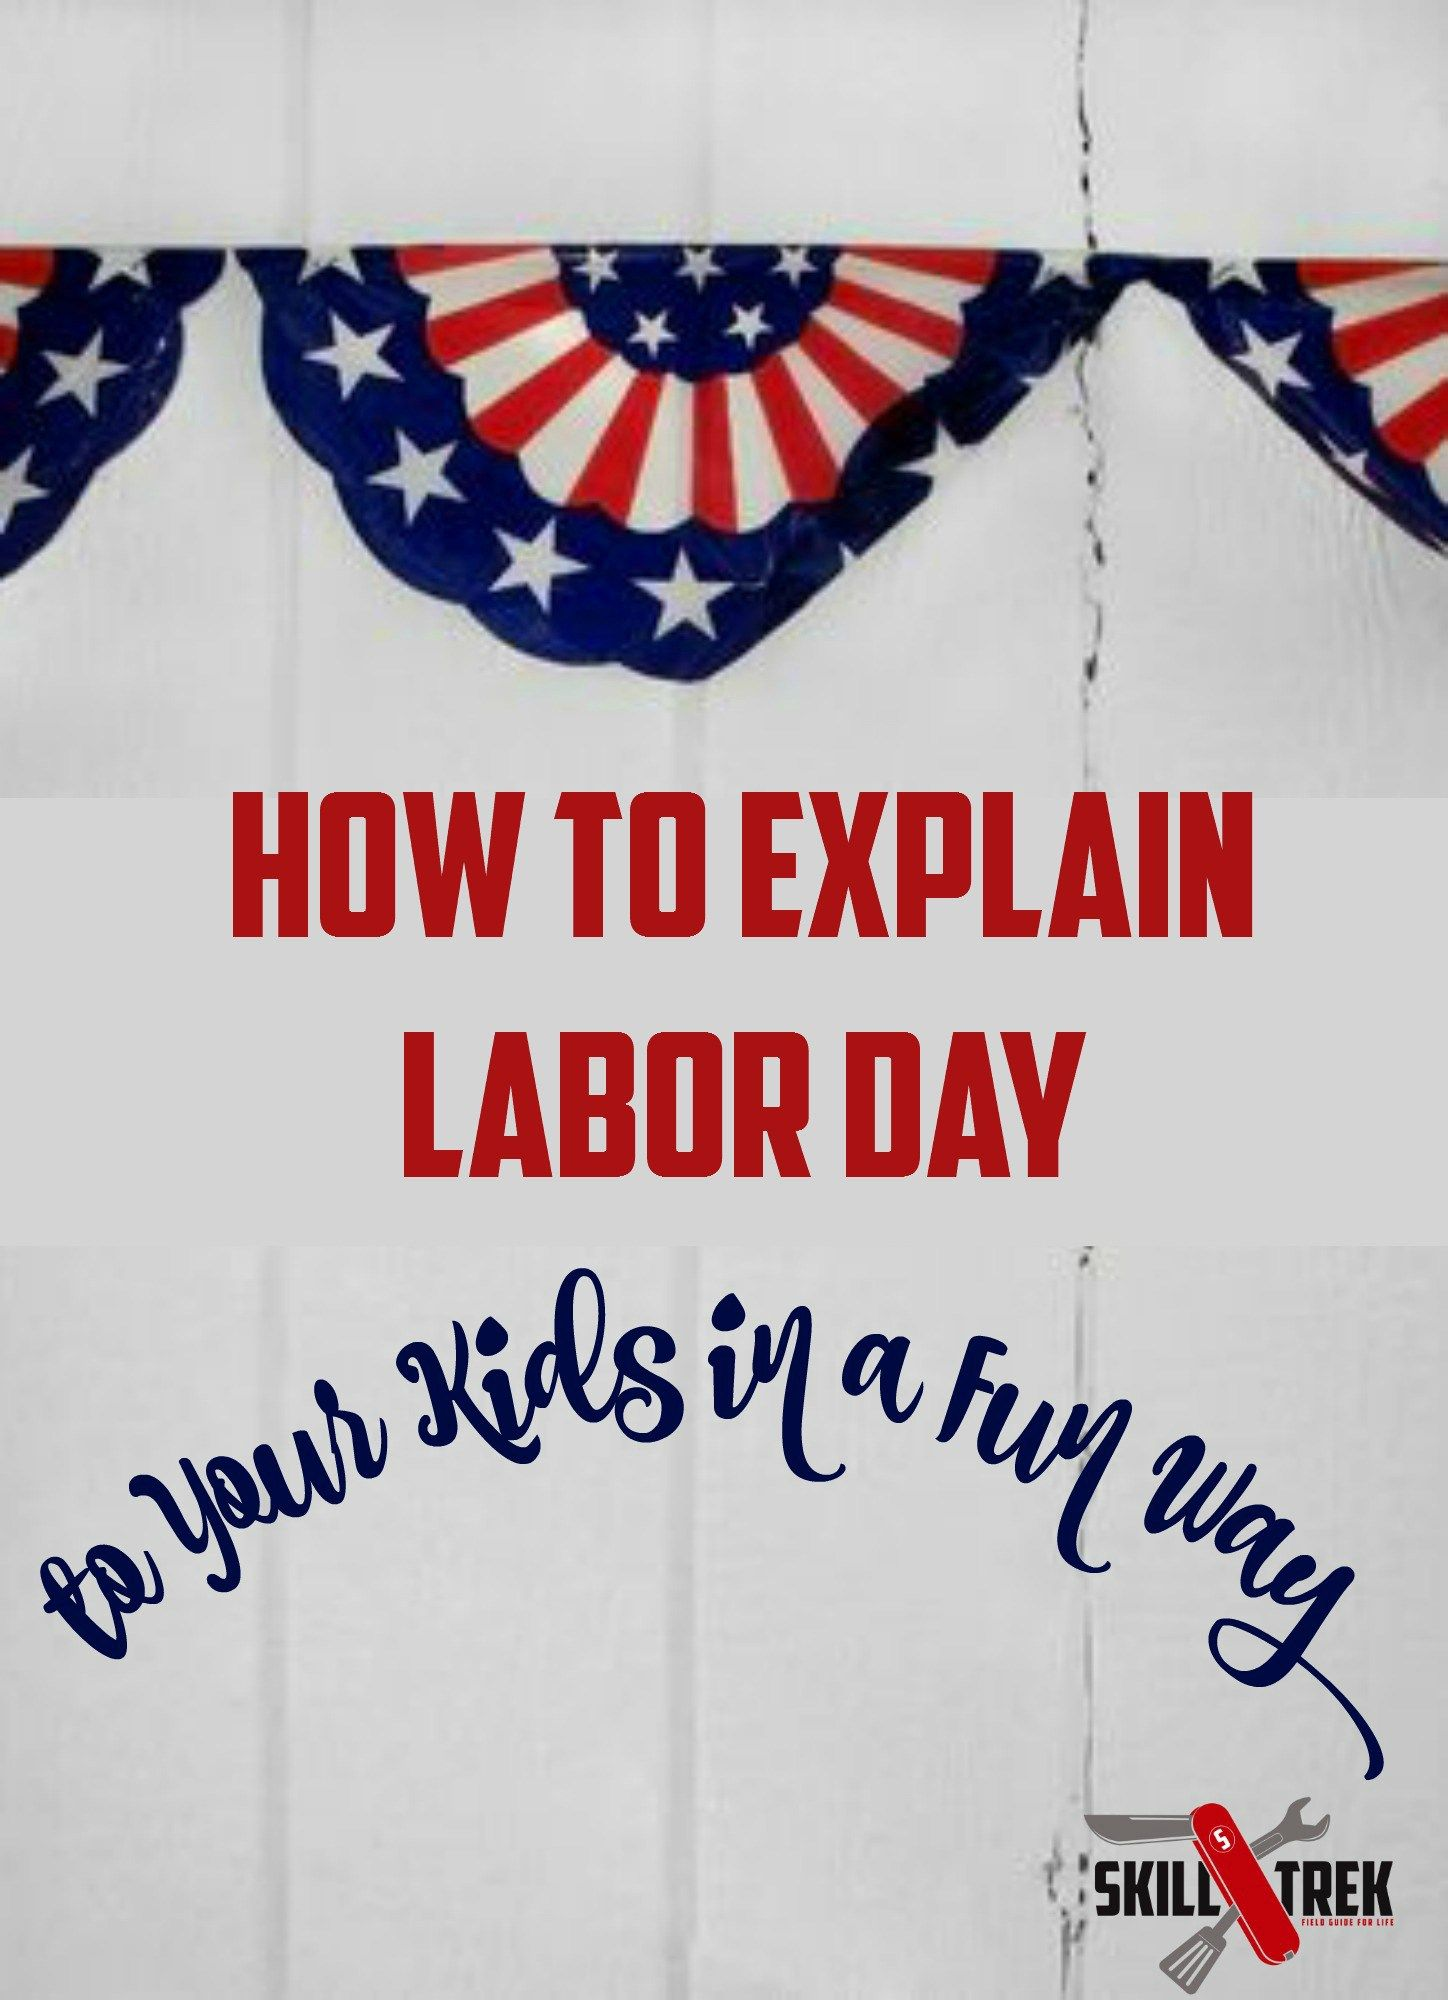 A Fun Way To Explain Labor Day To Your Kids